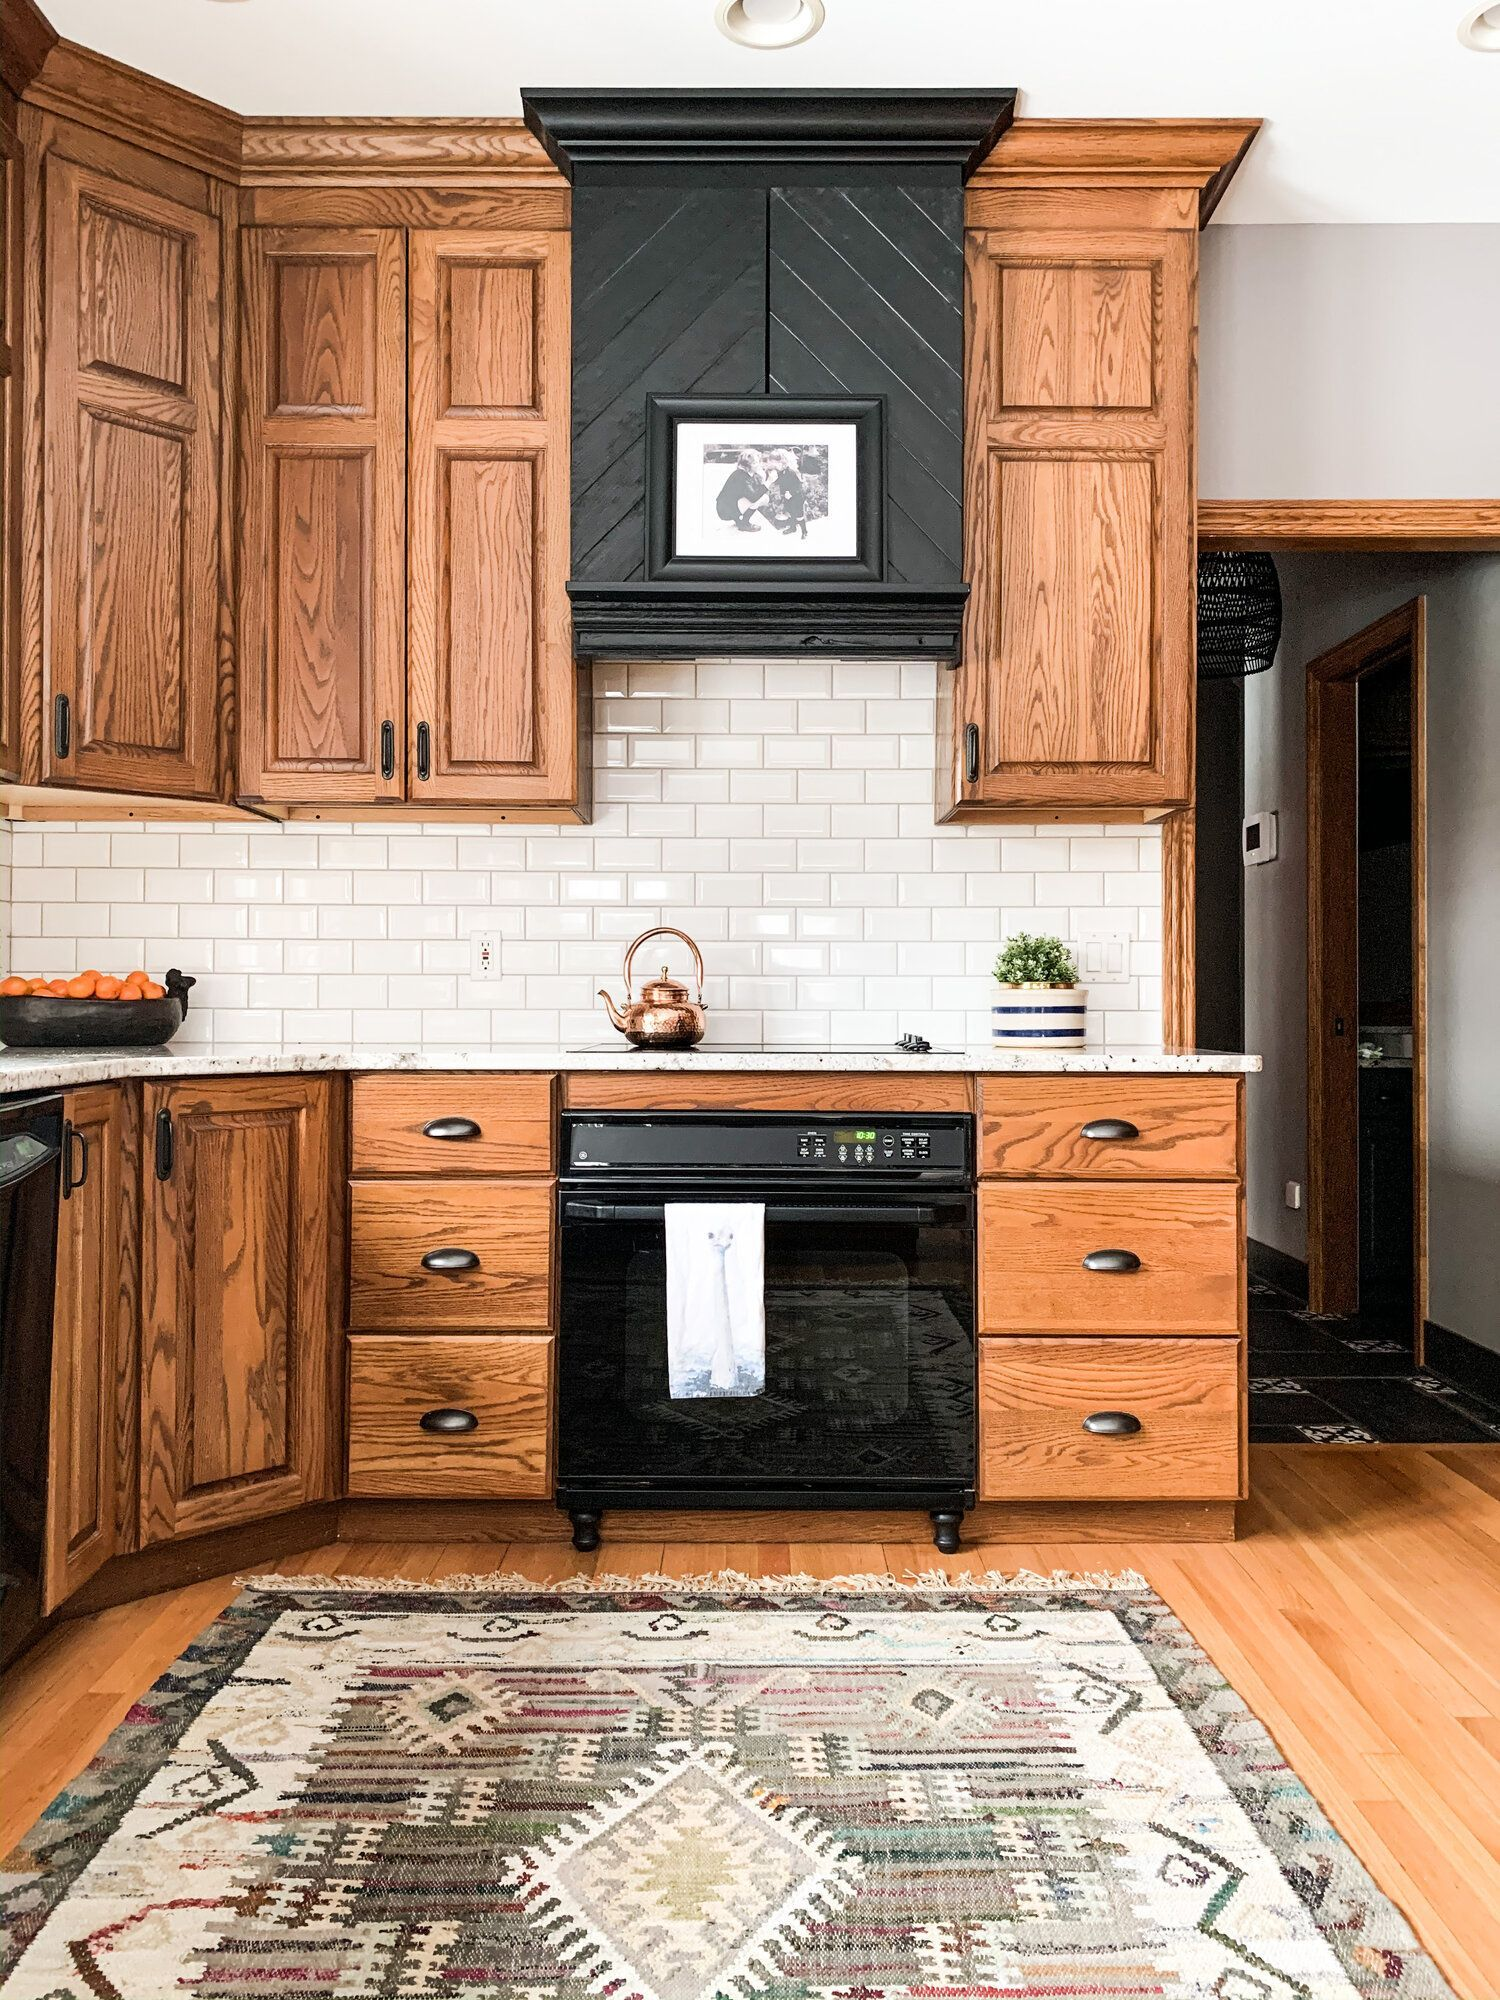 Oak Kitchens Were Very In Style 20 Years Ago But Now They Are Just Dated There Have Been Beautiful Houses On T Modern Oak Kitchen Oak Kitchen Kitchen Design